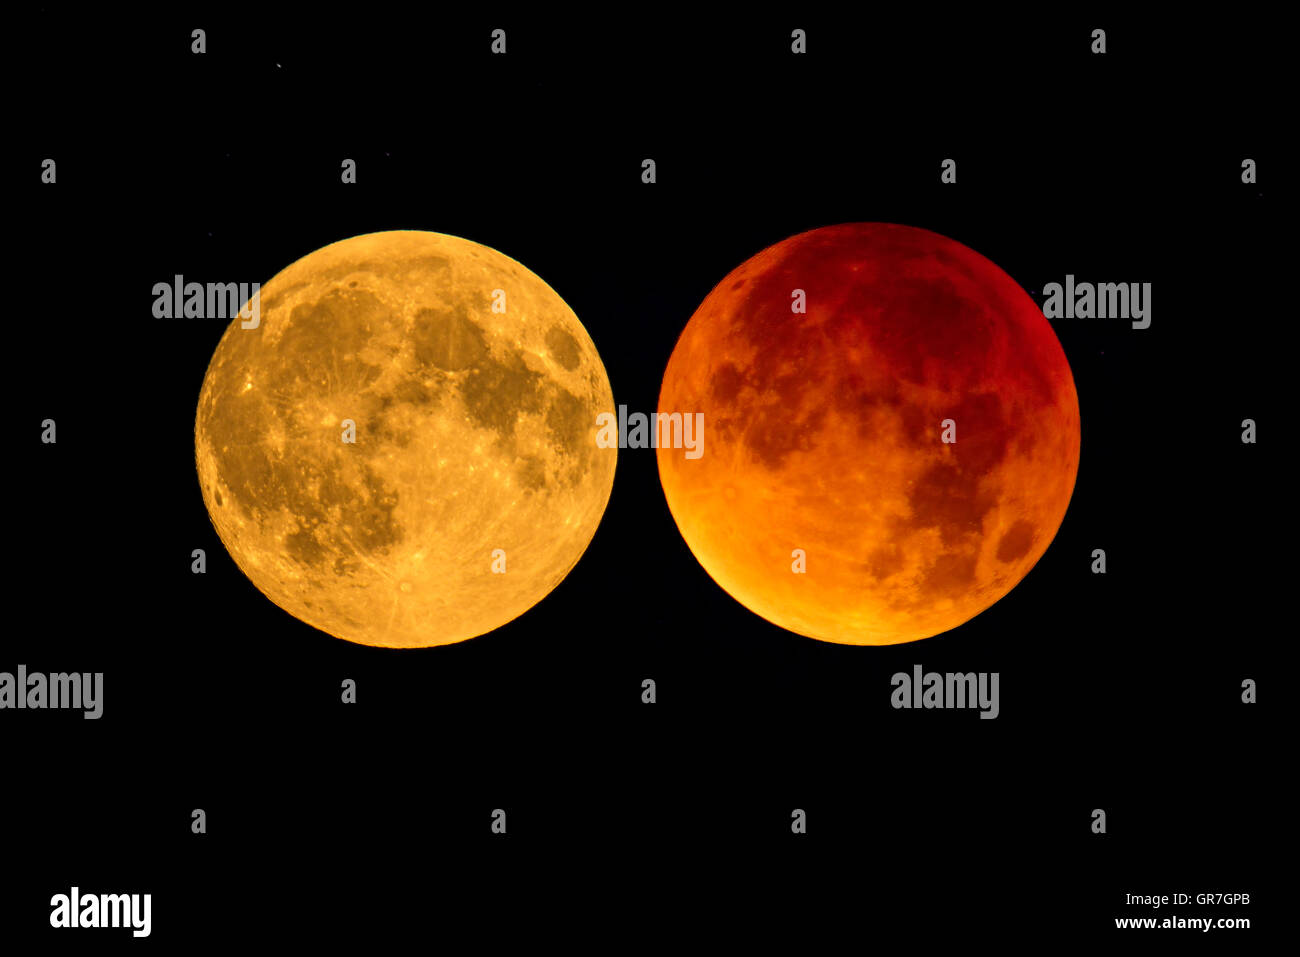 Full Moon Versus Blood Moon - Stock Image